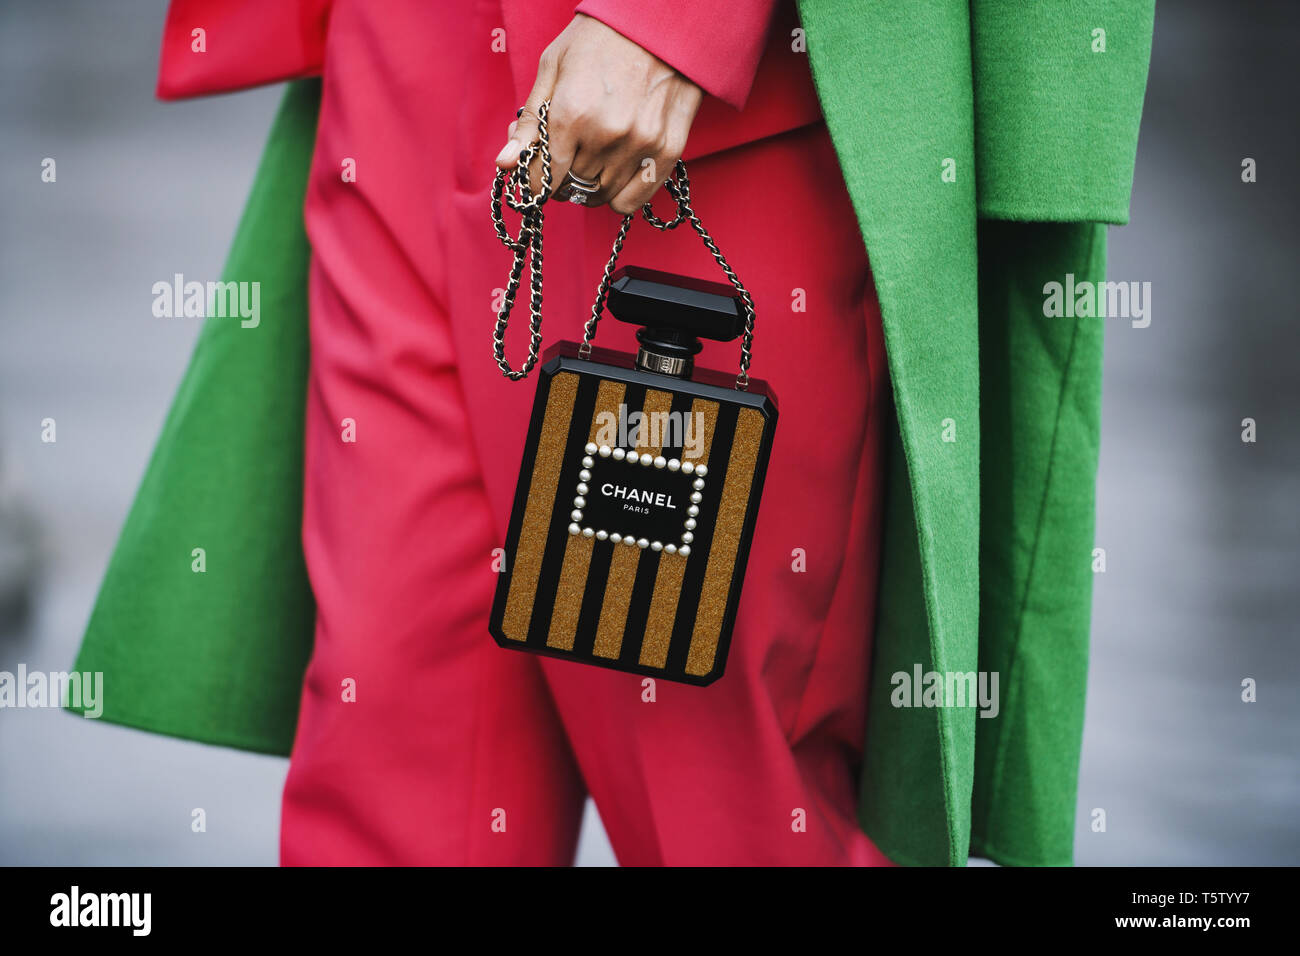 d97d21bf1faf Paris, France - March 5, 2019: Street style - Chanel purse and outfit